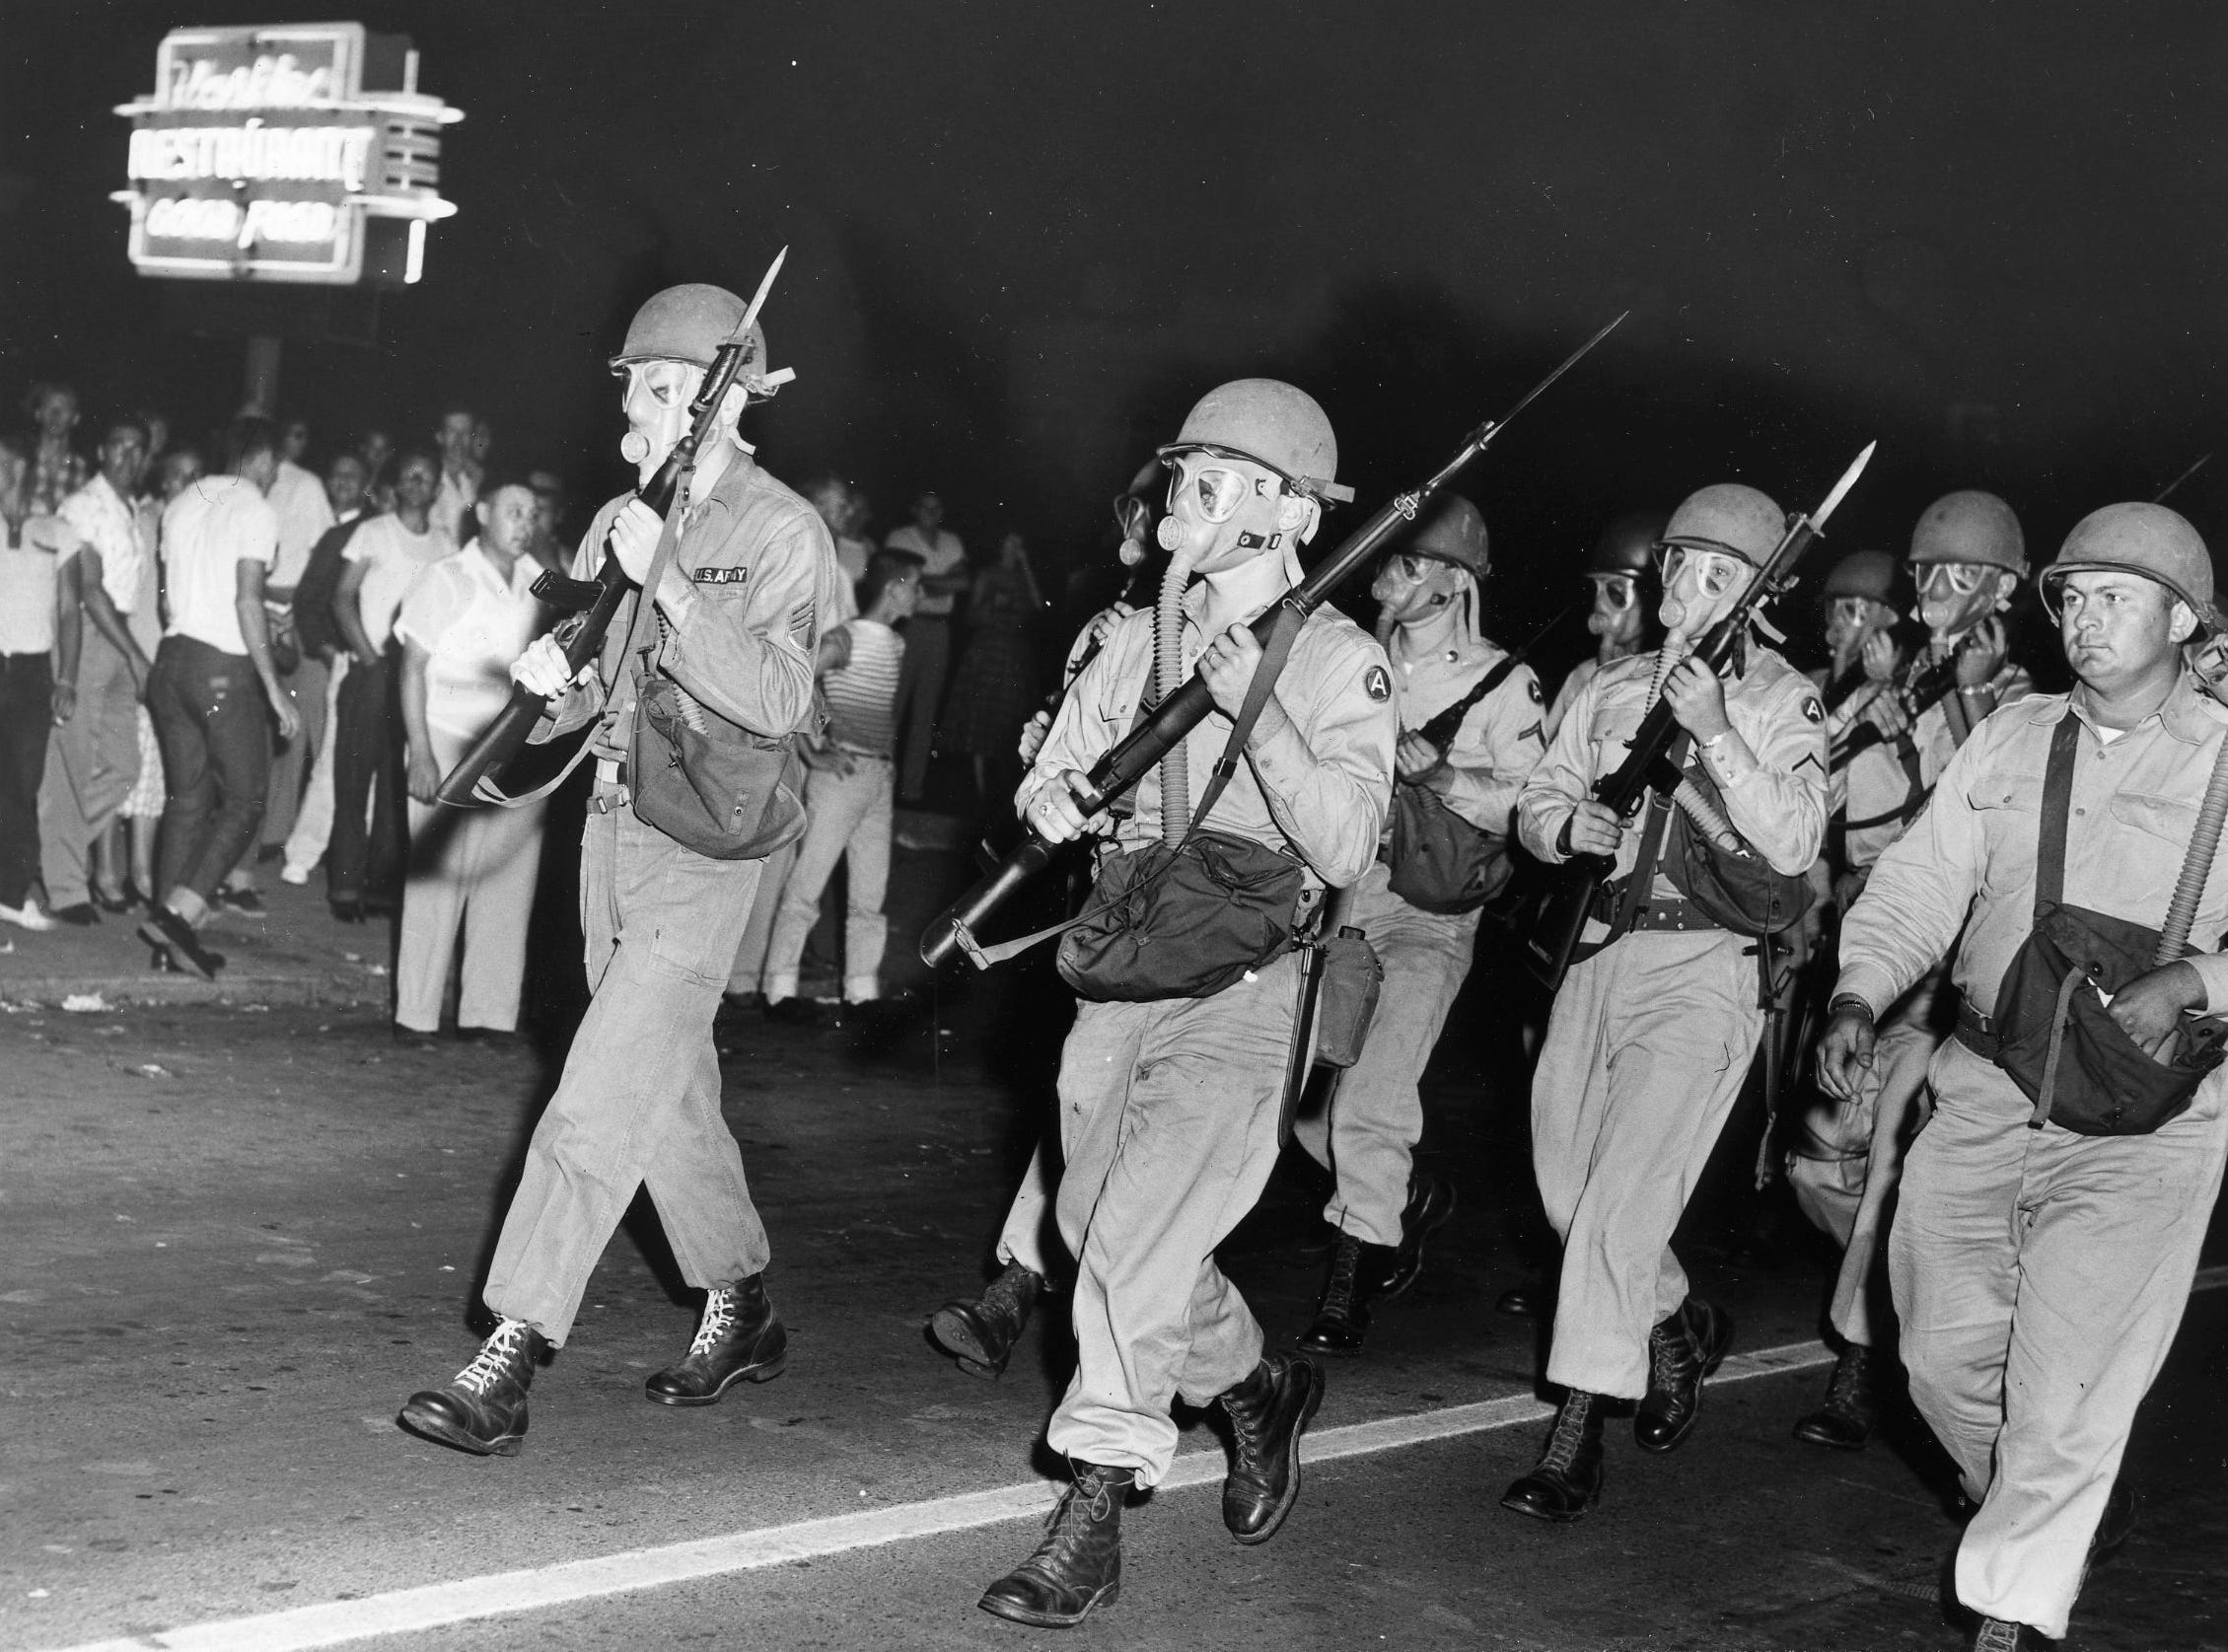 Tennessee National Guardsmen, wearing gas masks march with fixed bayonets into the courthouse square to clear the streets of demonstrators and prevent another riot from taking place in Clinton. Dated: Sep. 3, 1956.